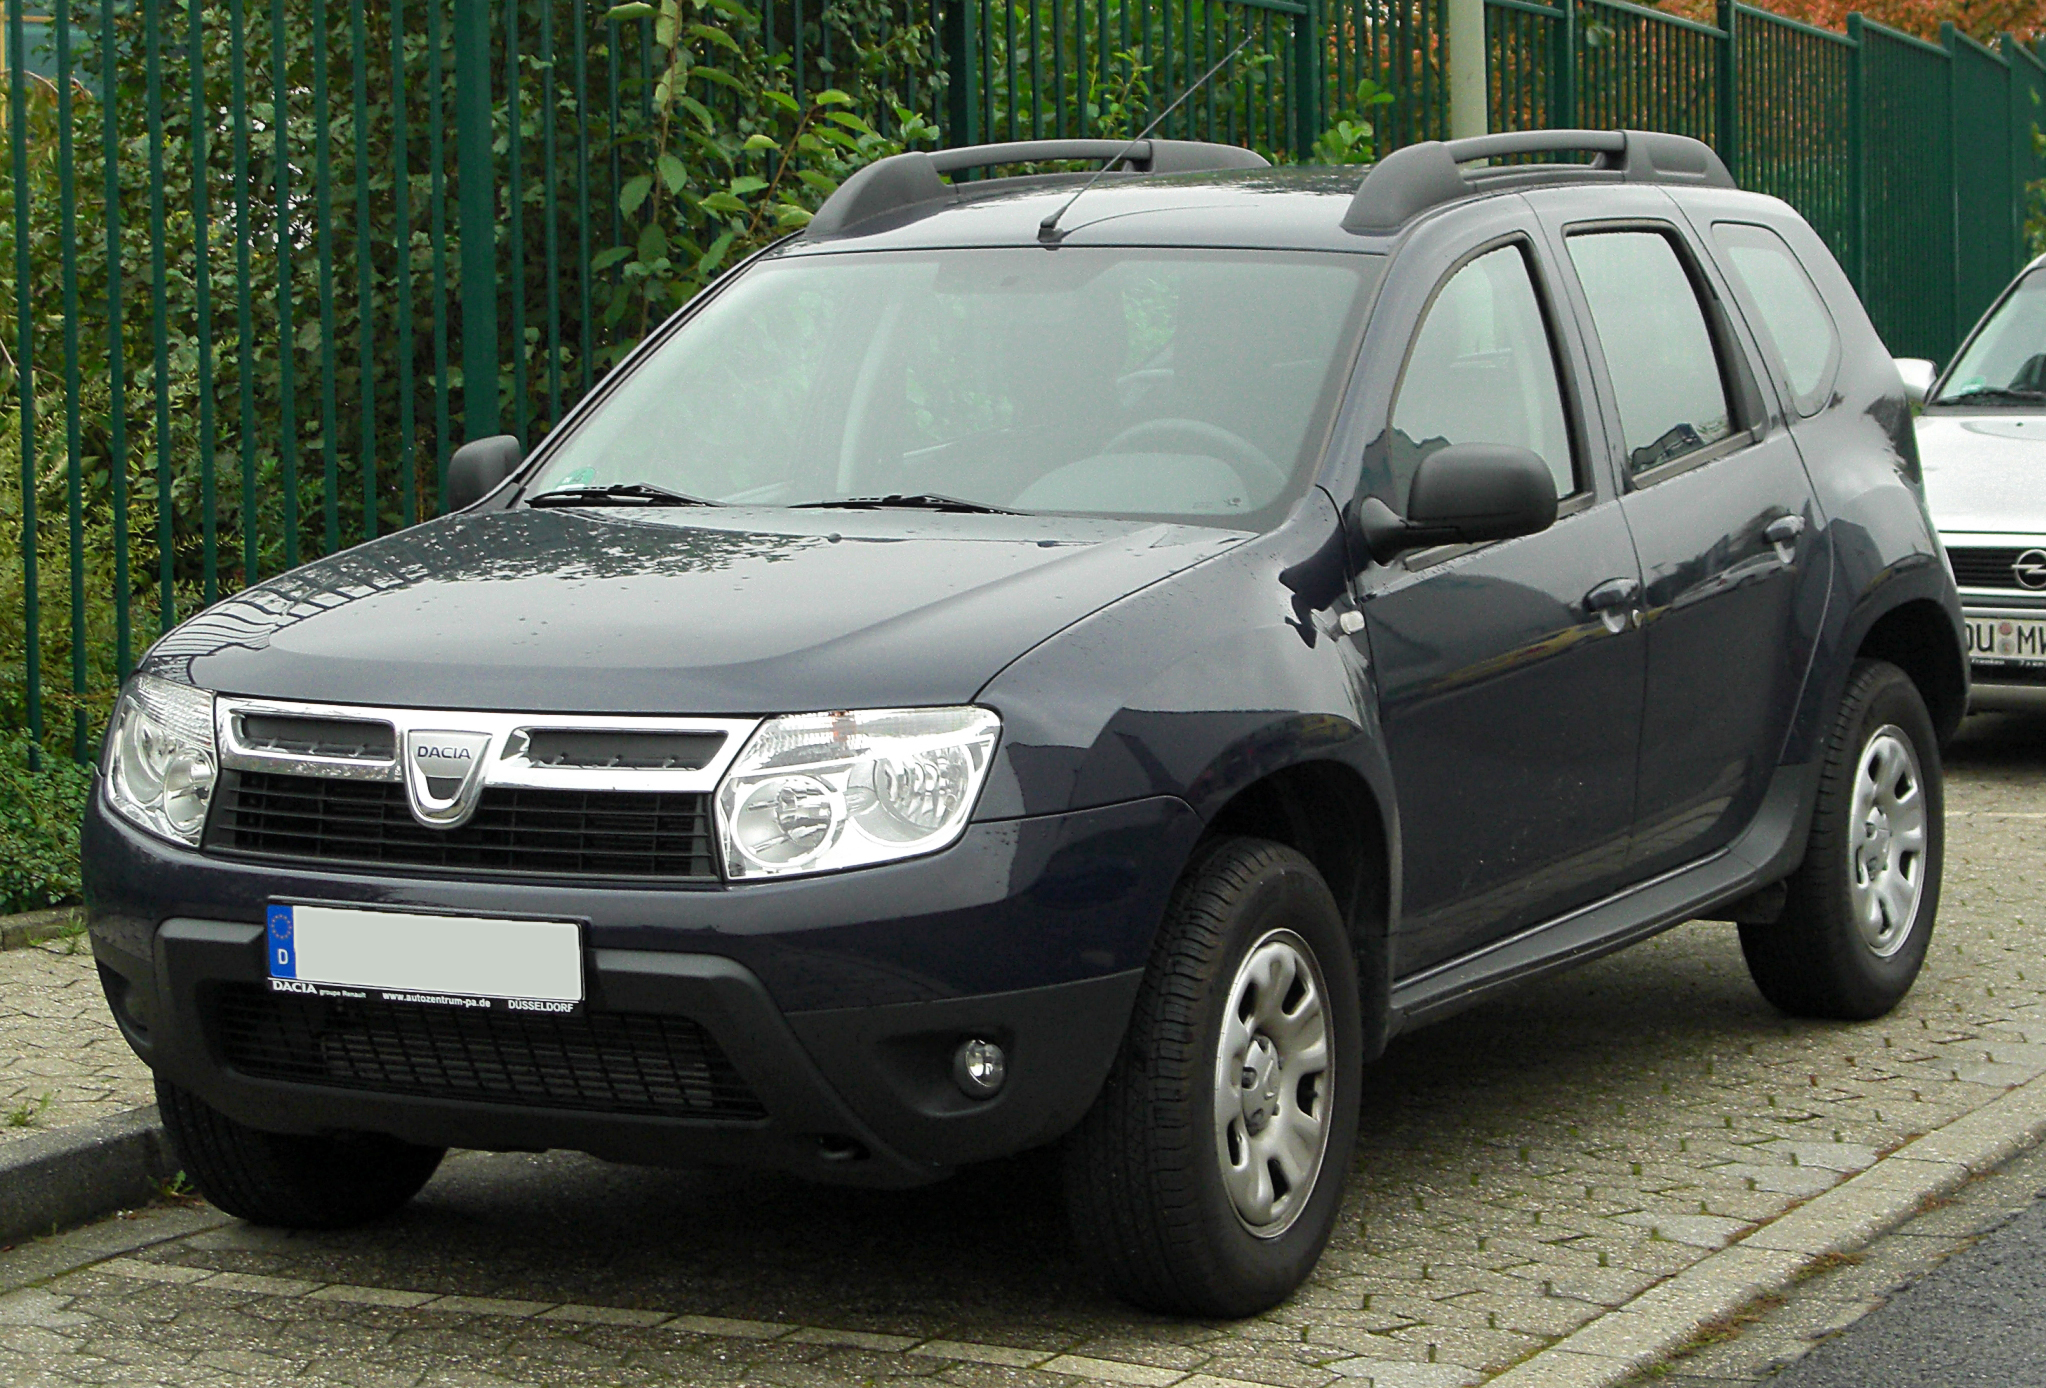 file dacia duster 1 5 dci front wikipedia. Black Bedroom Furniture Sets. Home Design Ideas